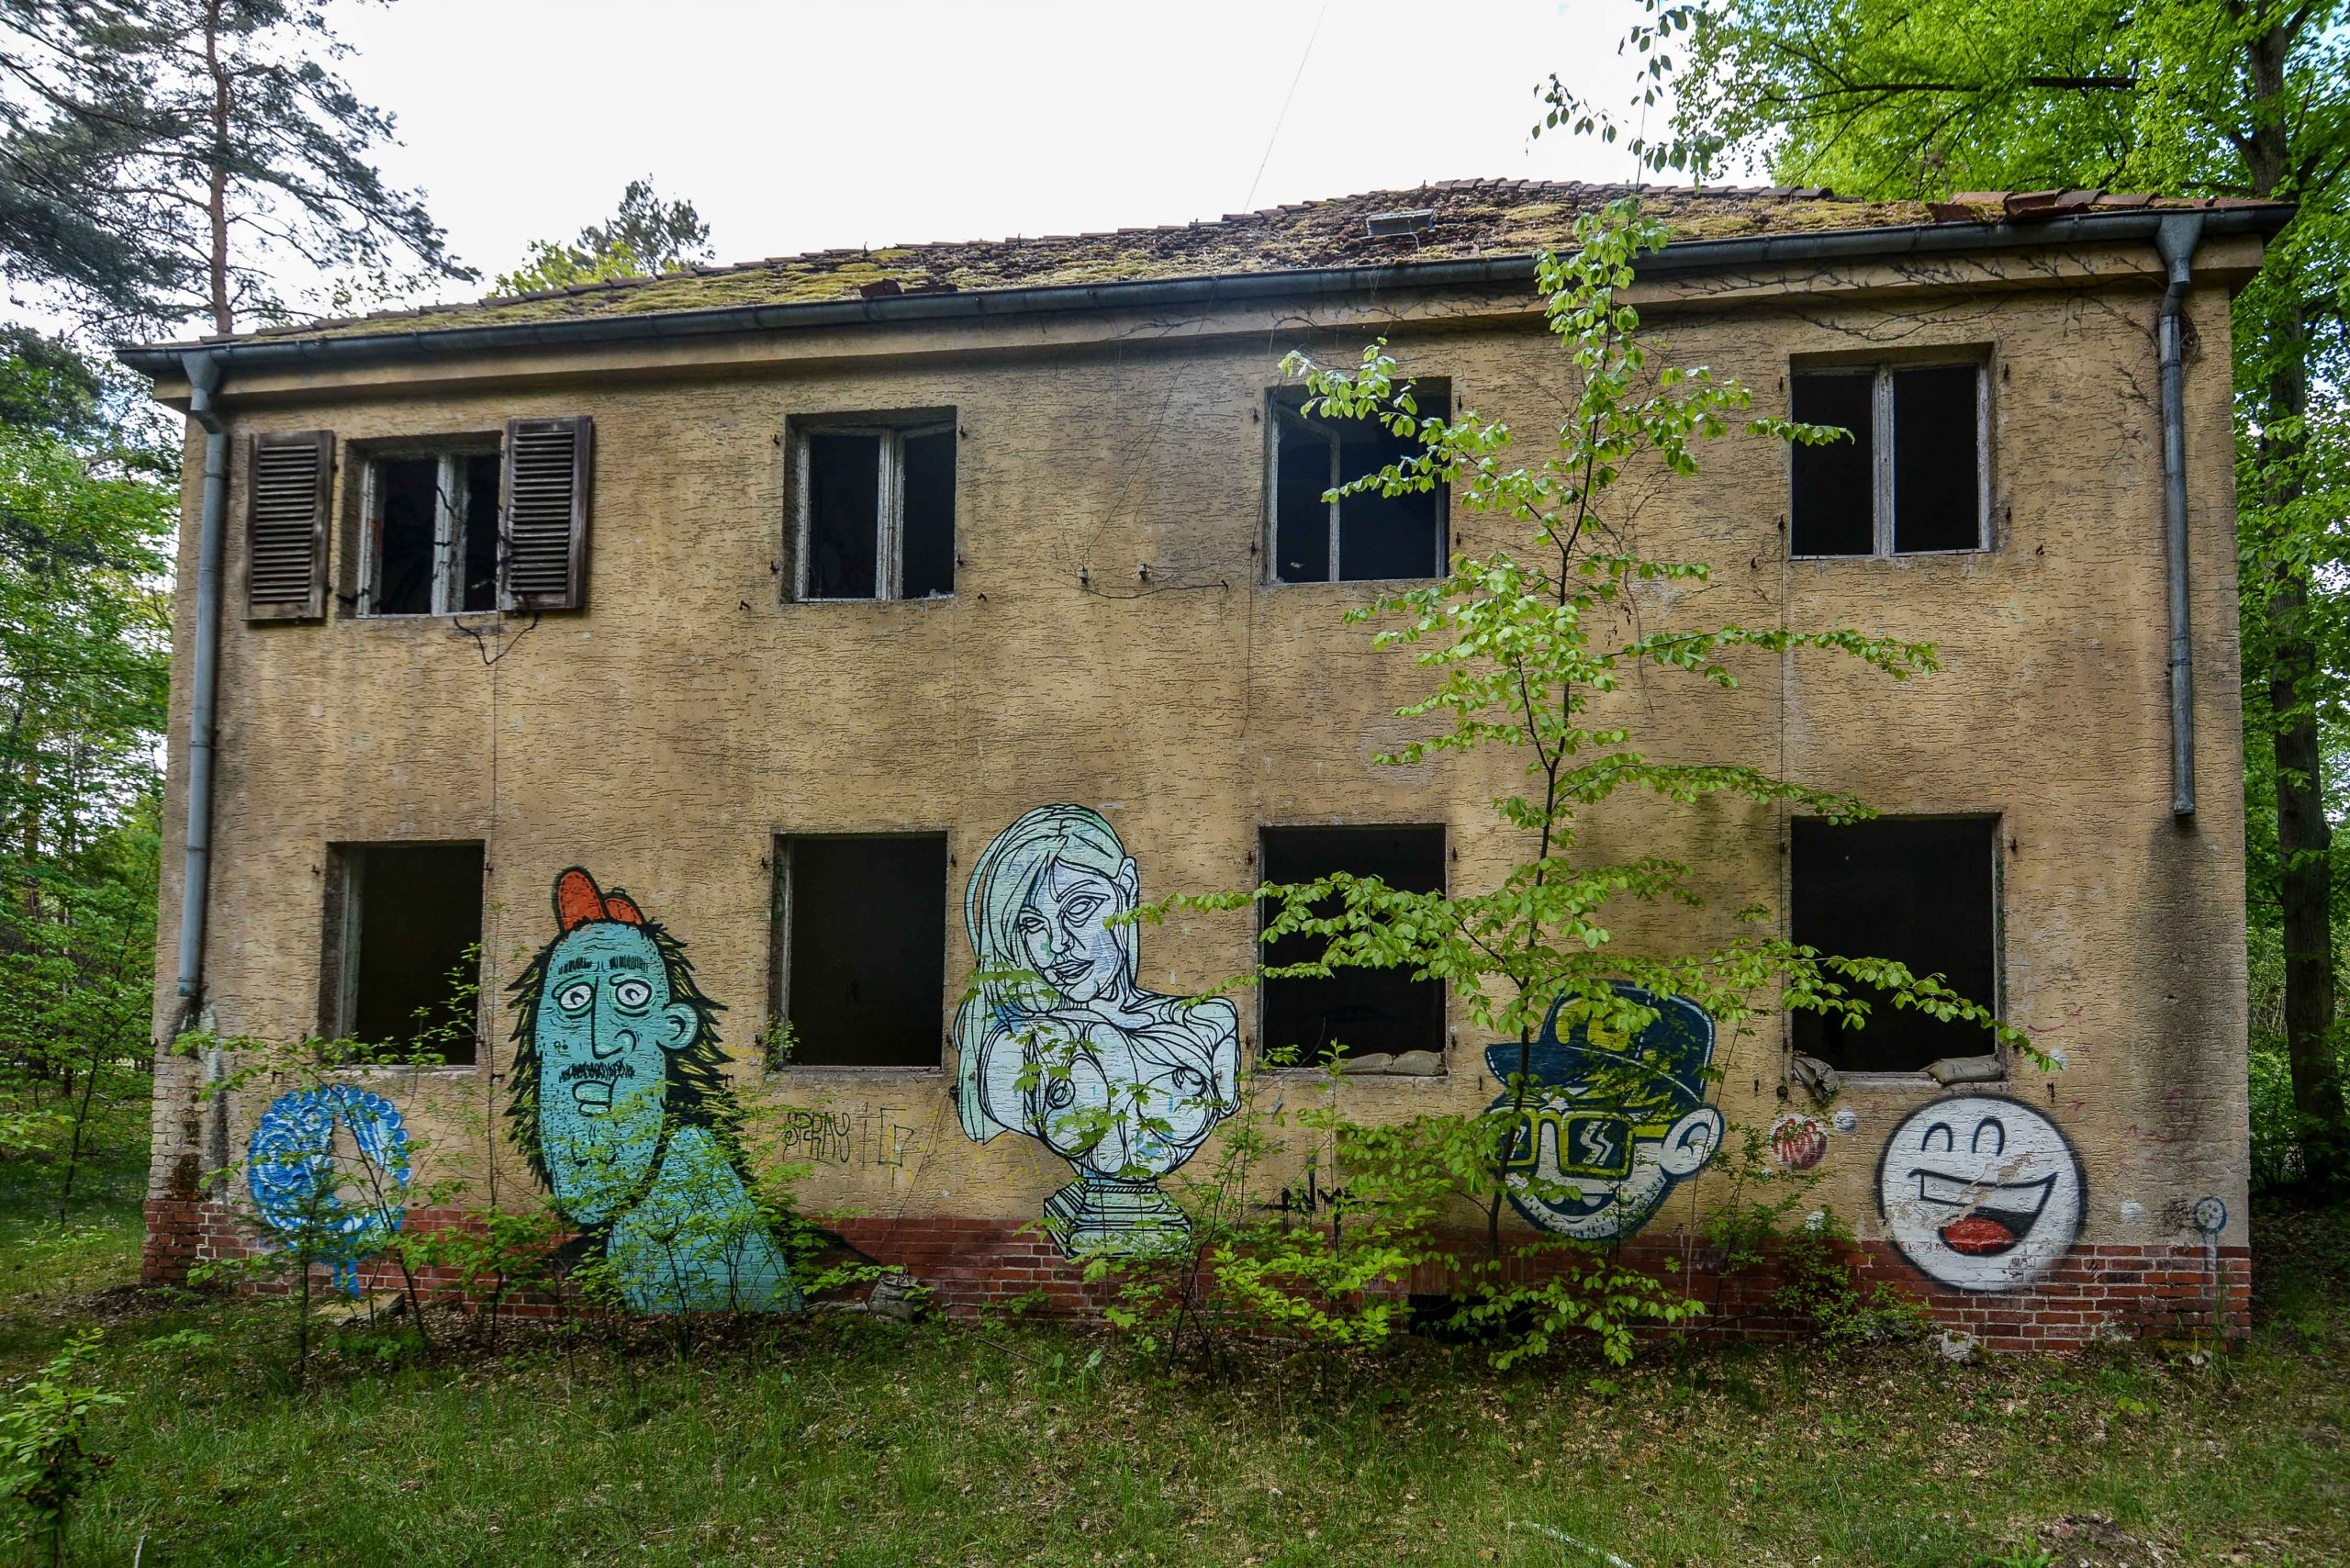 house graffiti street art tuberkulose heilstaette grabowsee sanatorium oranienburg lost places abandoned urbex brandenburg germany deutschland